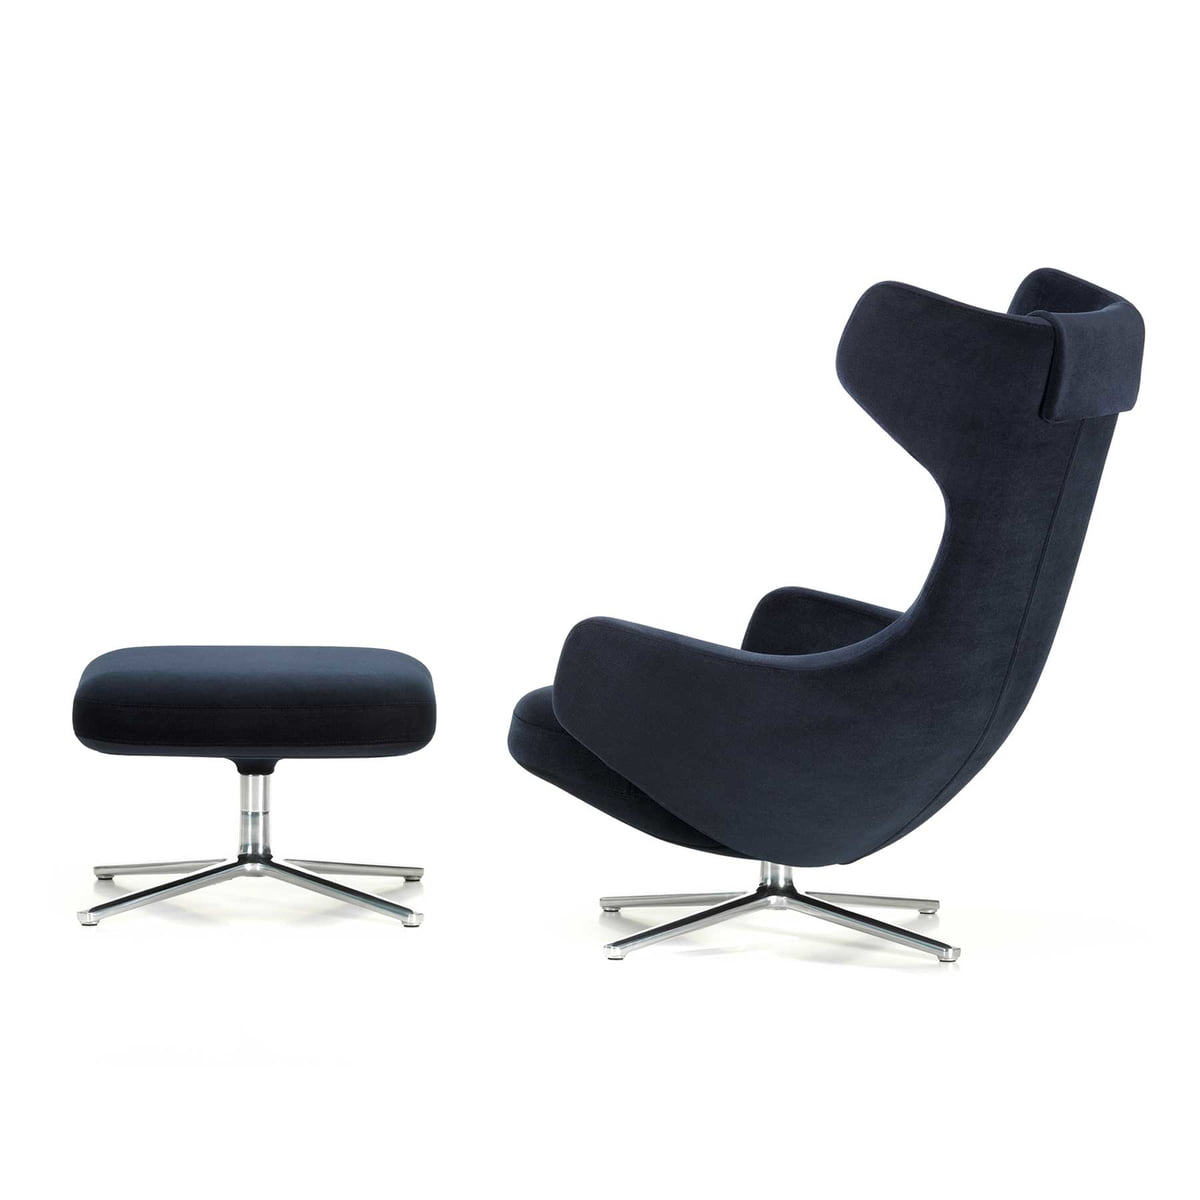 grand repos sessel ottoman vitra shop